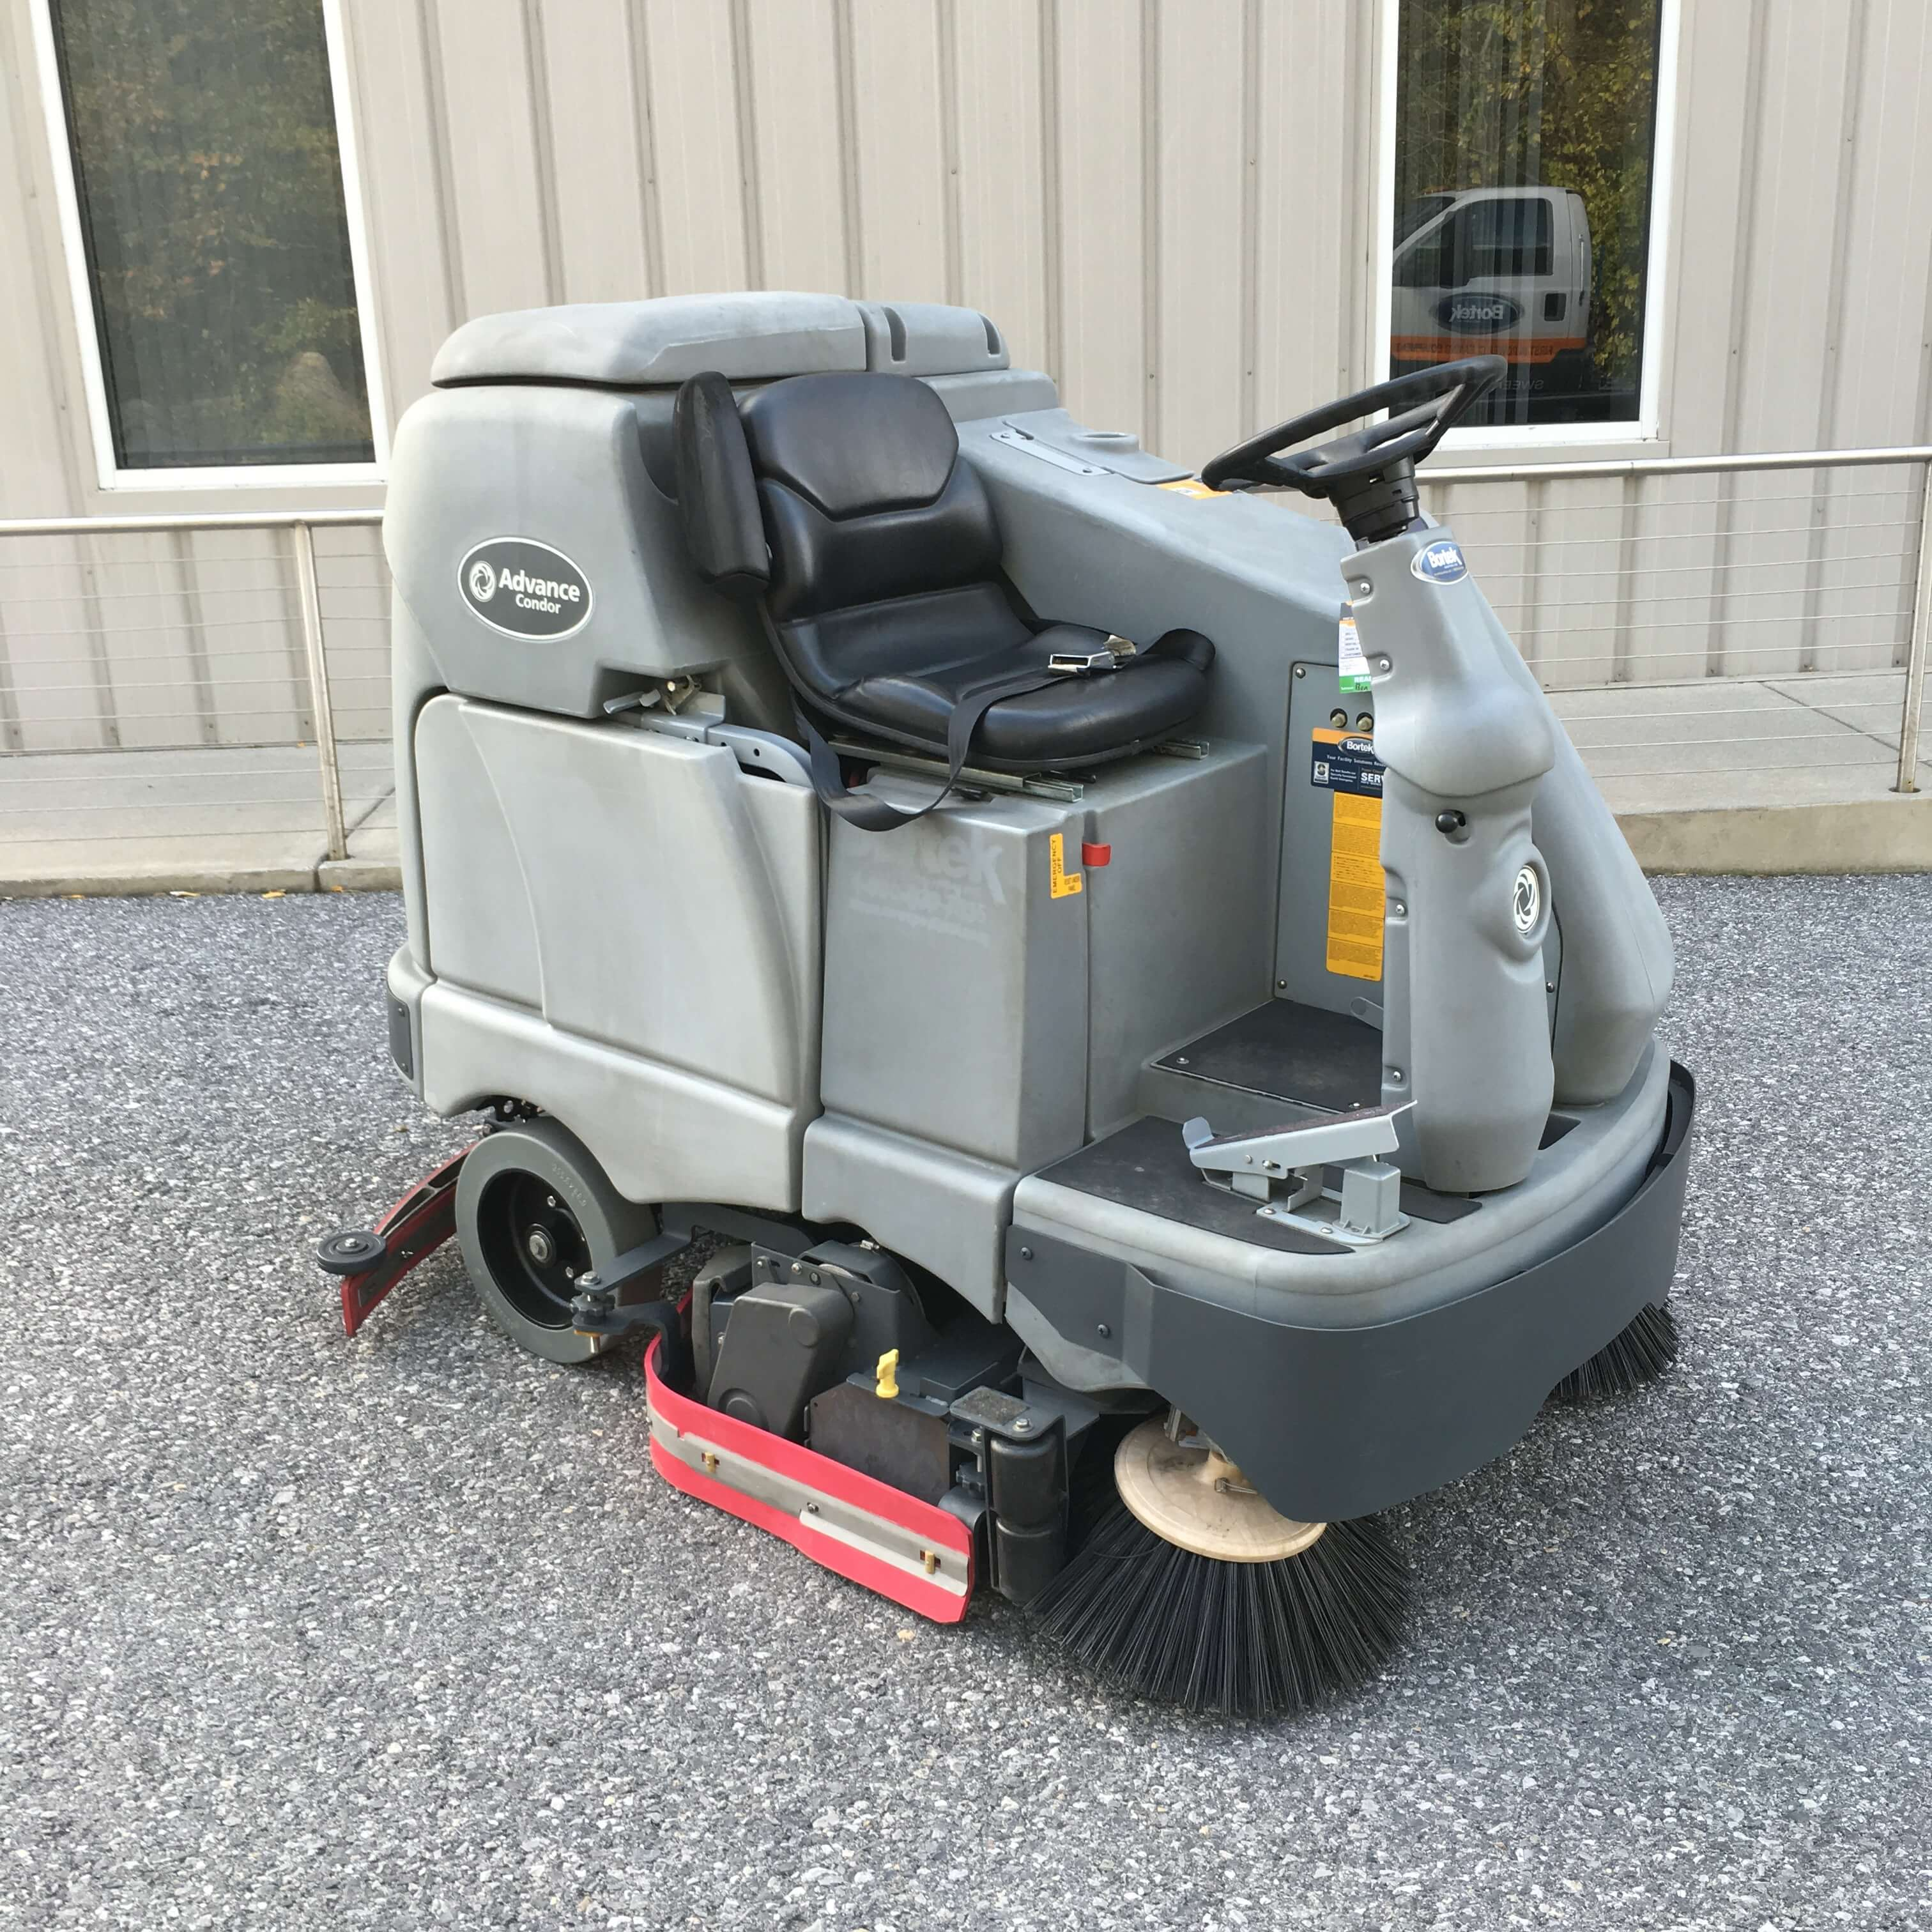 machine promocontent scrubbers automatic reviewed showimage cleaning post walk floors scrubber global floor best for behind minuteman jerusalem